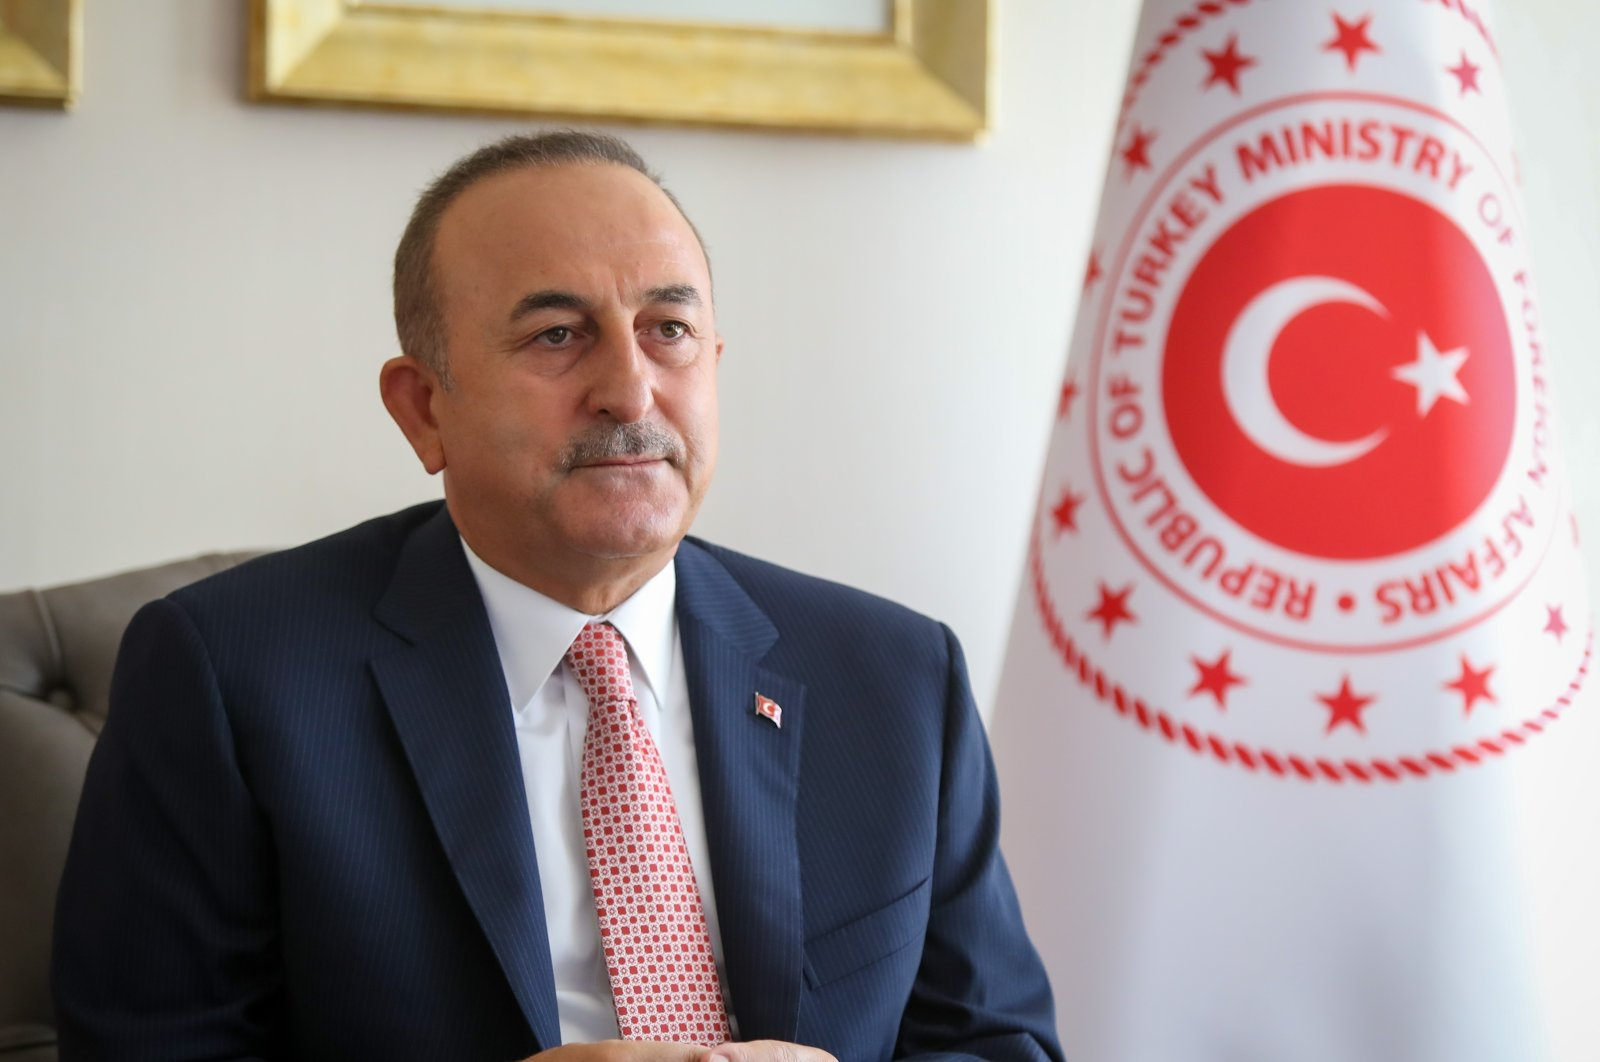 Turkish Foreign Minister Mevlut Çavuşoğlu attends the Asia Anew Panel of World Knowledge Forum which was held via videoconference in Ankara, Turkey, Sept. 16, 2020. (AA Photo)